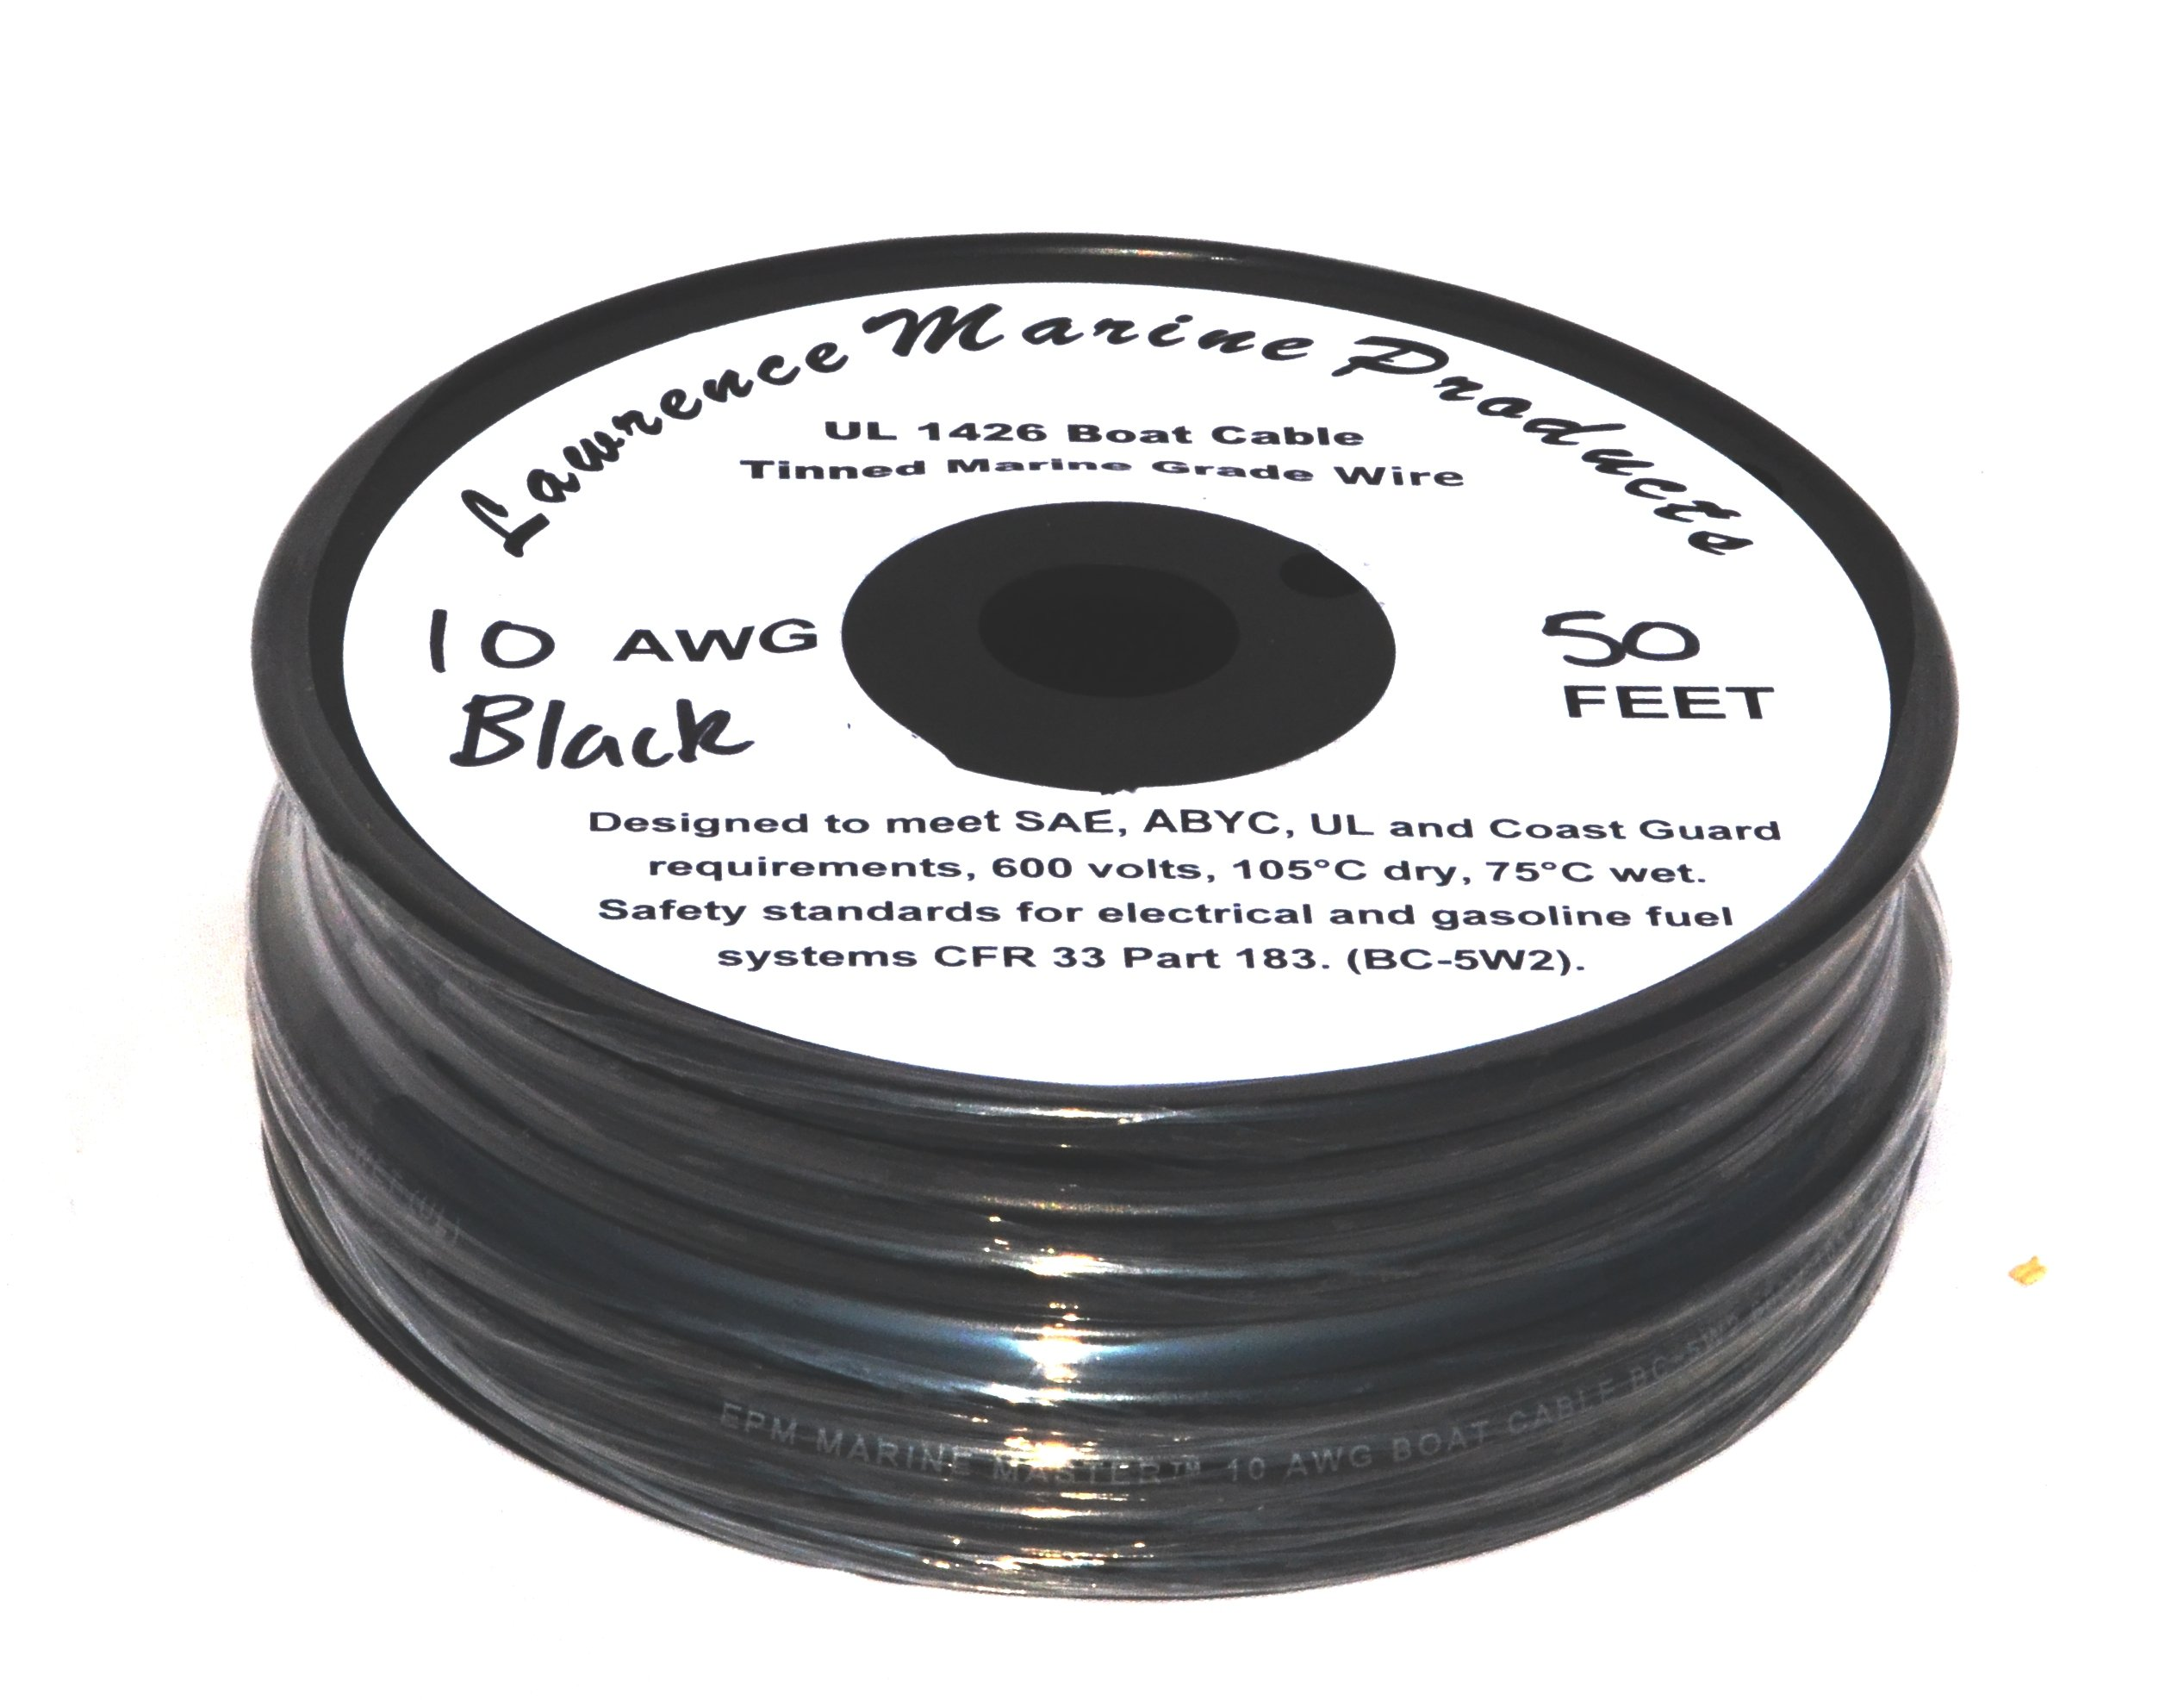 10 AWG Tinned Marine Primary Wire, Black, 50 Feet by Lawrence Marine Products (Image #1)